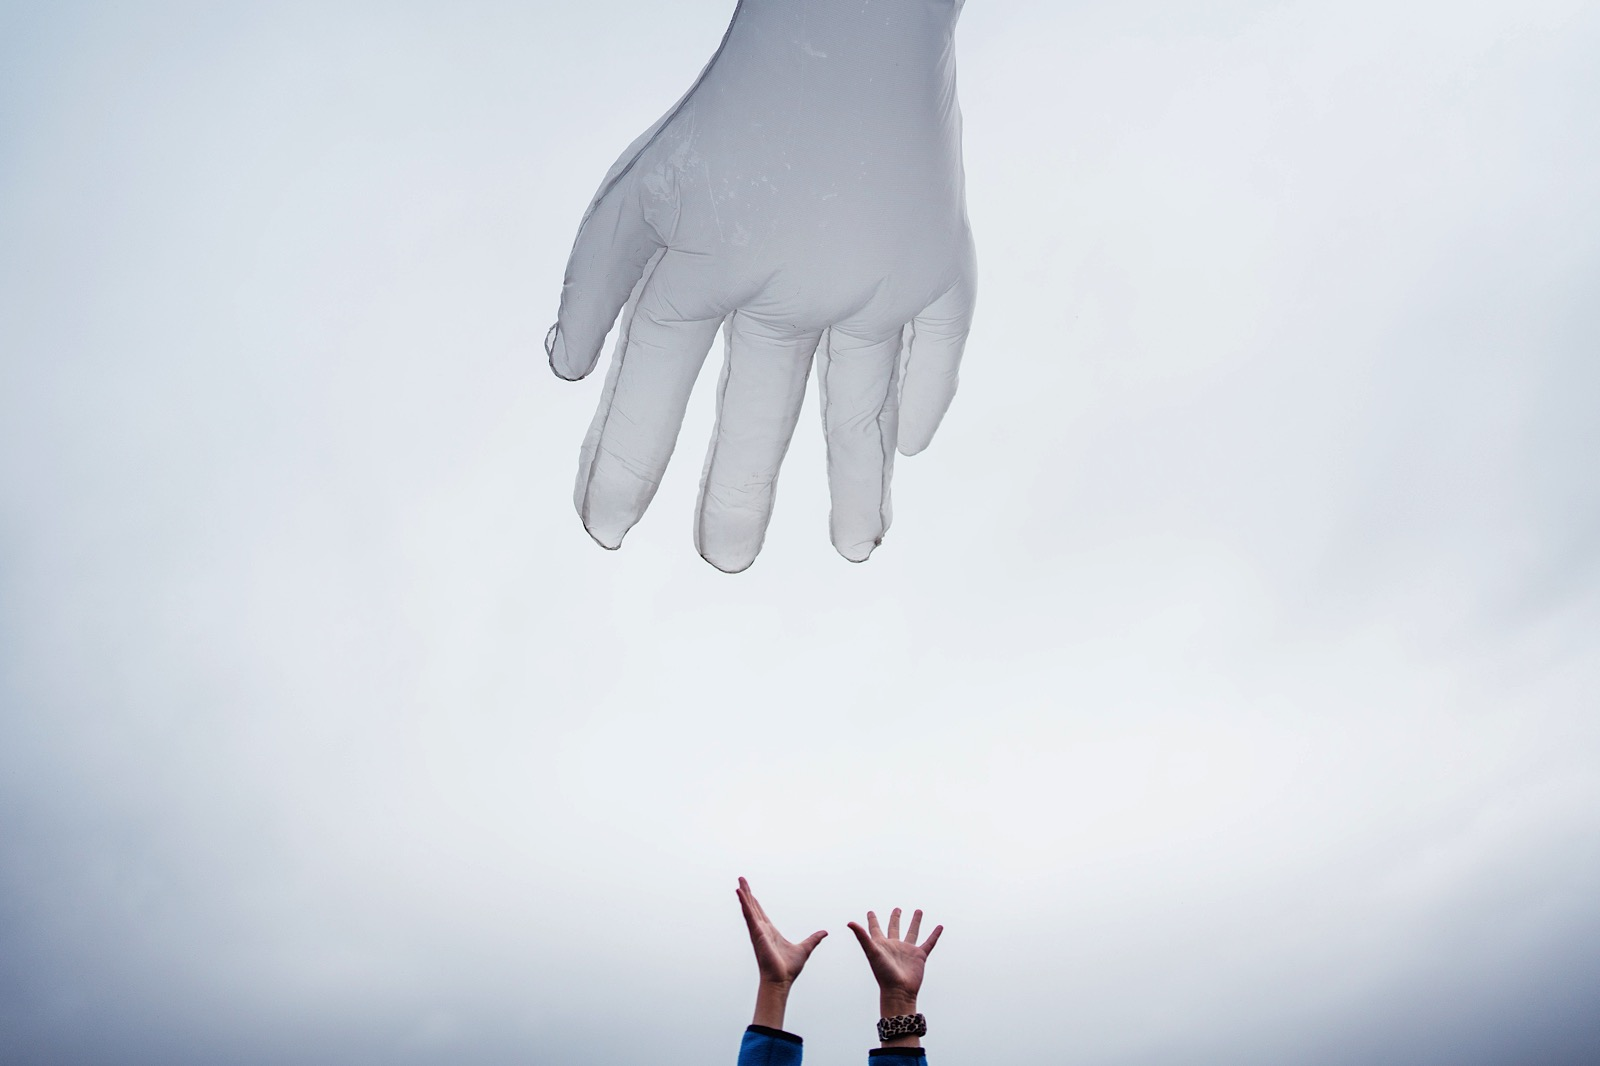 2 hands reaching in air toards big inflatable hand